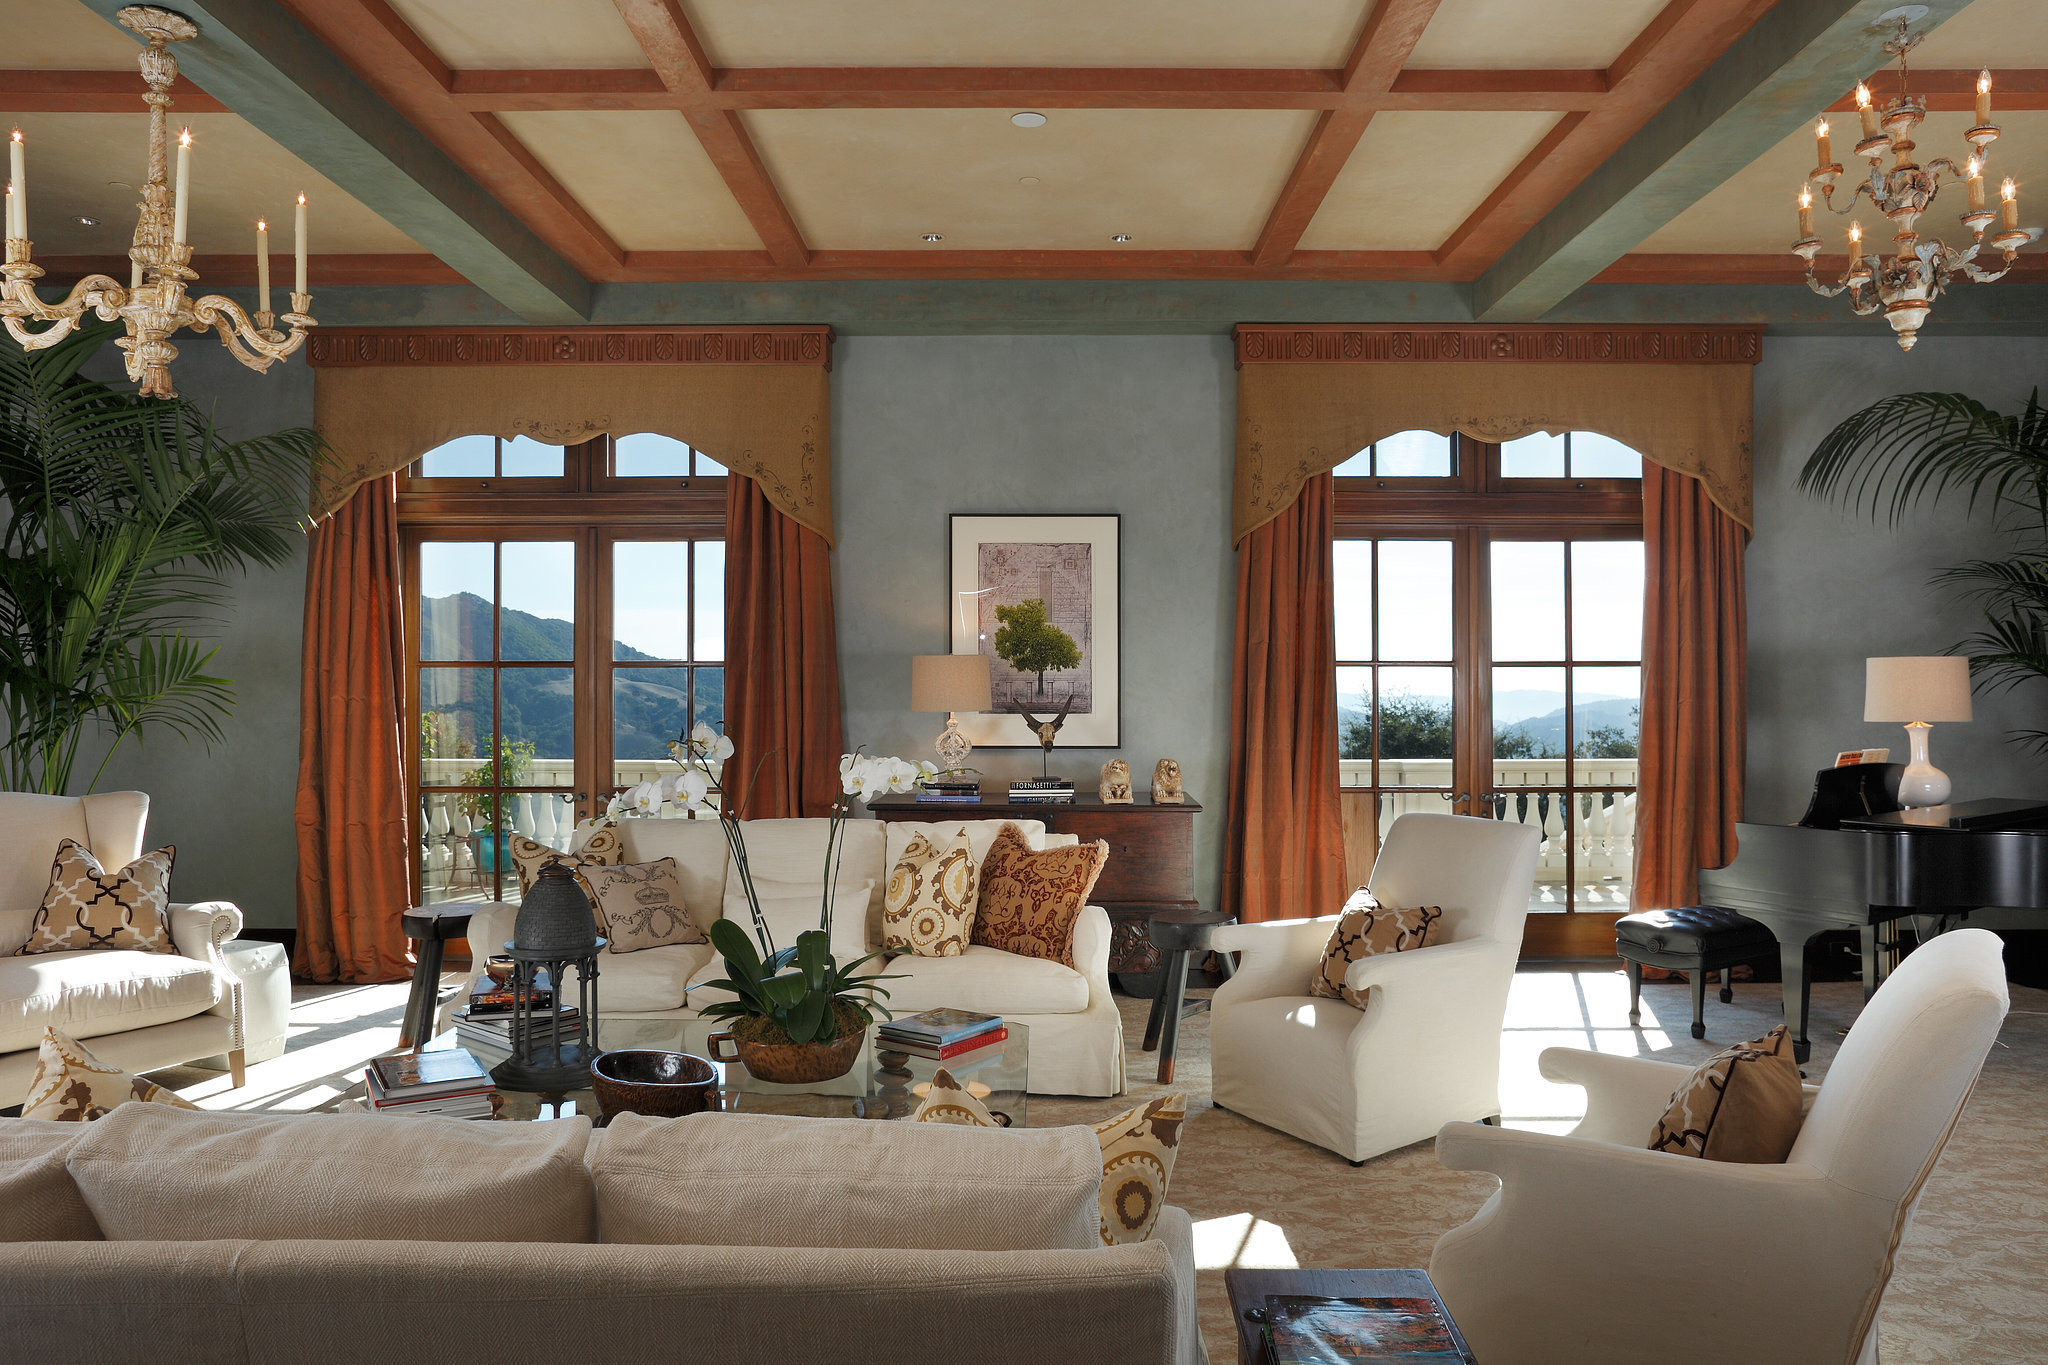 Who needs art when you have giant windows framing the picturesque landscape?  Image Source: Property listing by Joyce Rey and Cyd Greer for Coldwell Bankers Previews International